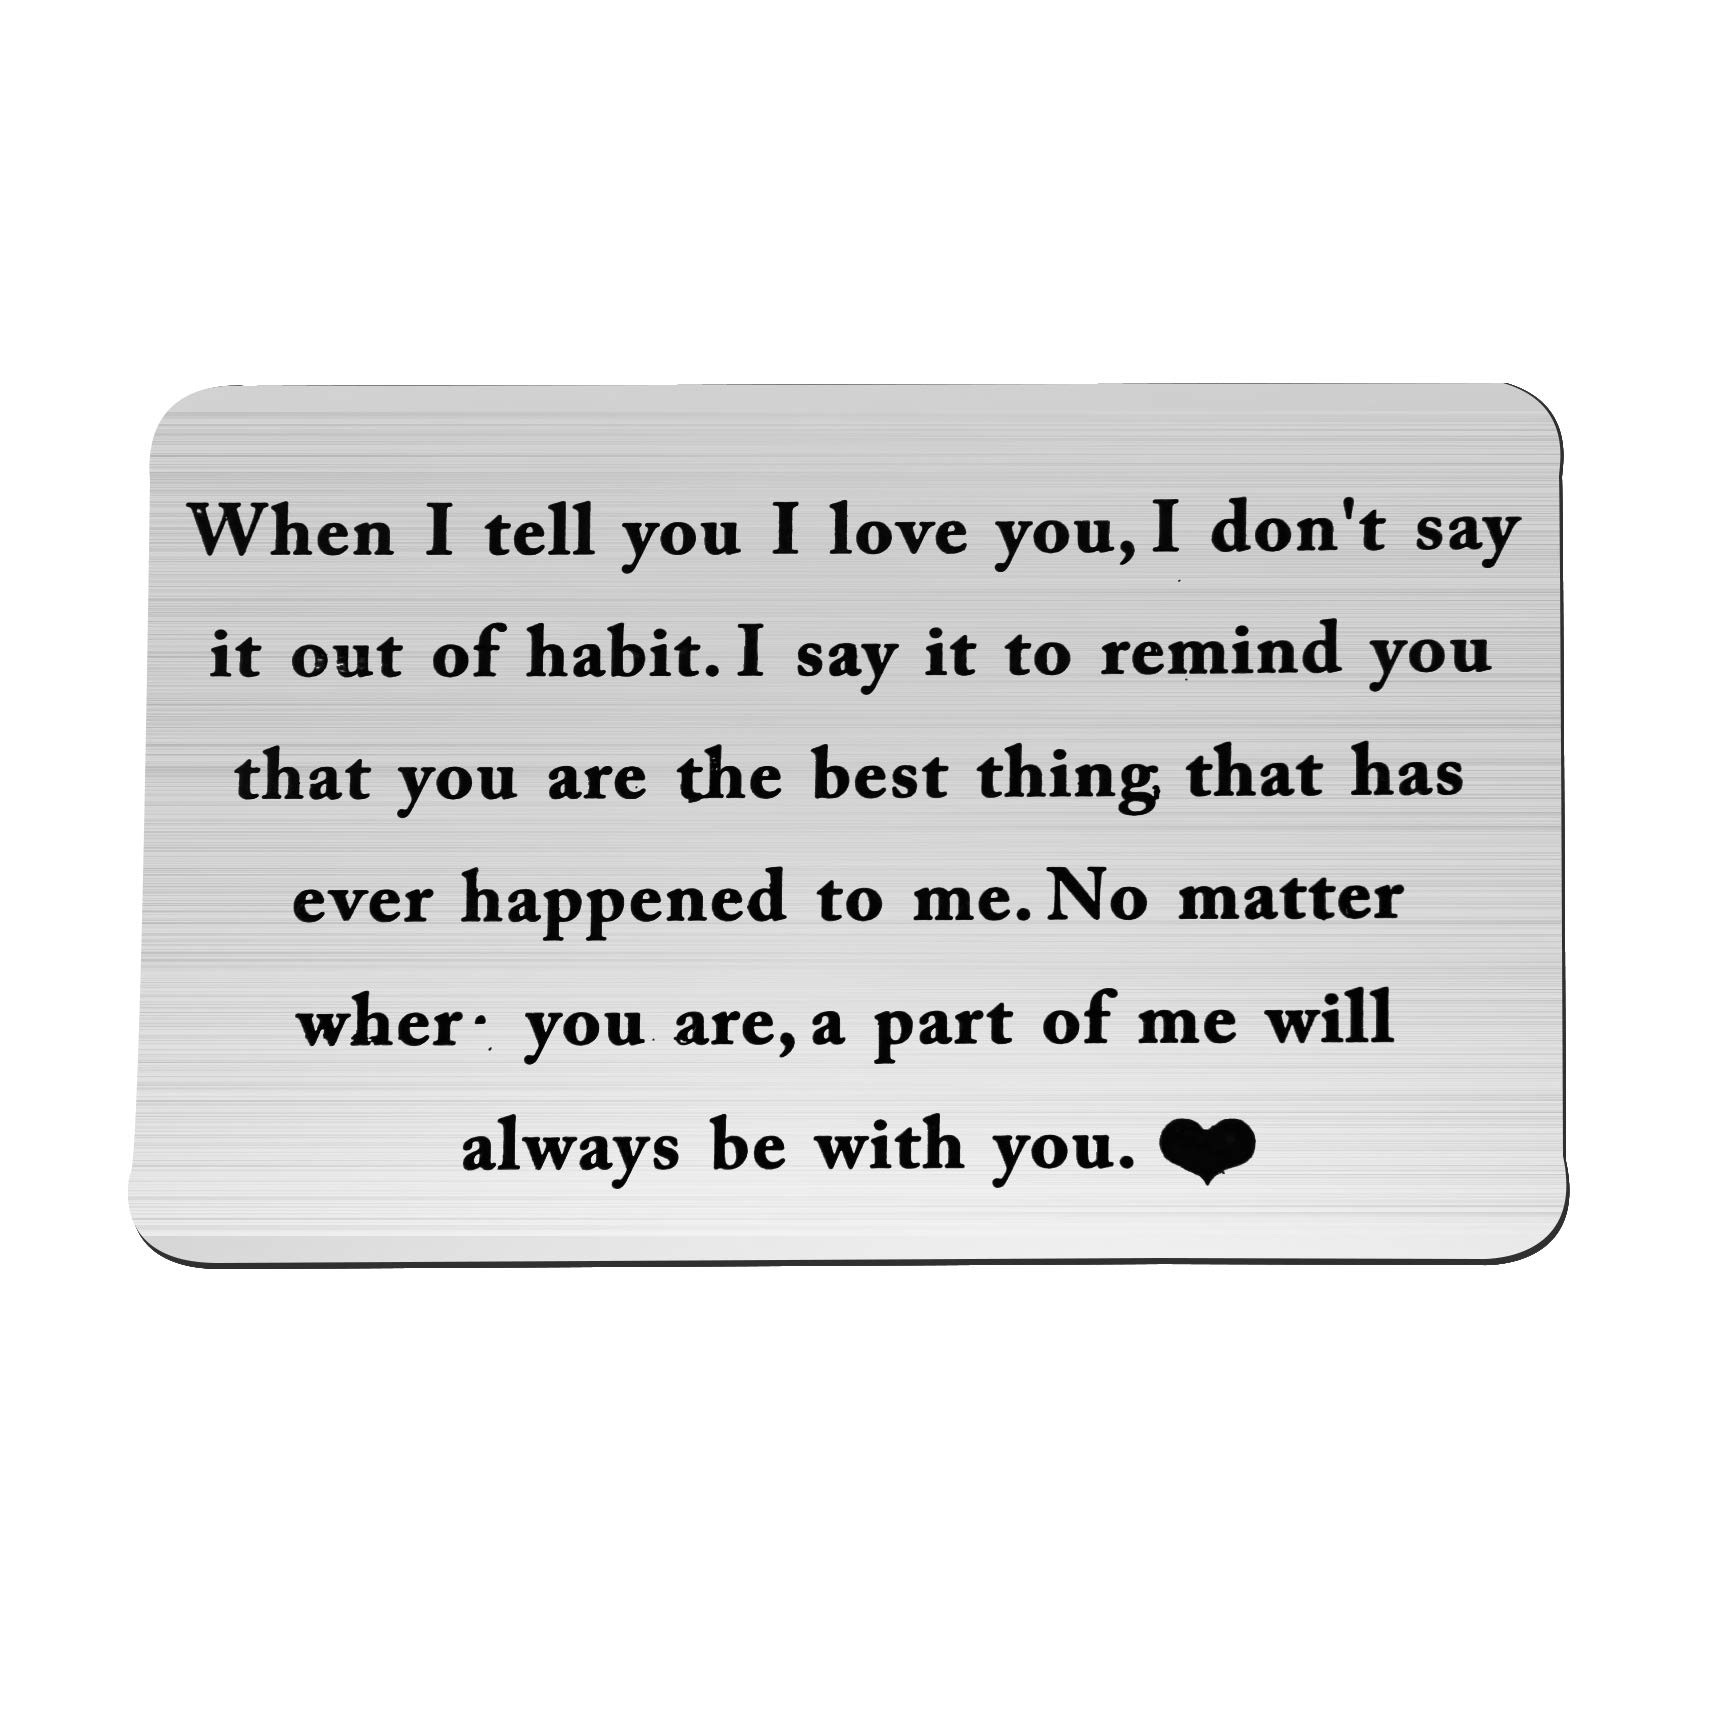 ENSIANTH Wallet Card Insert When I Tell You I Love You Wallet Card Groom's Gift for Him (Be with You)